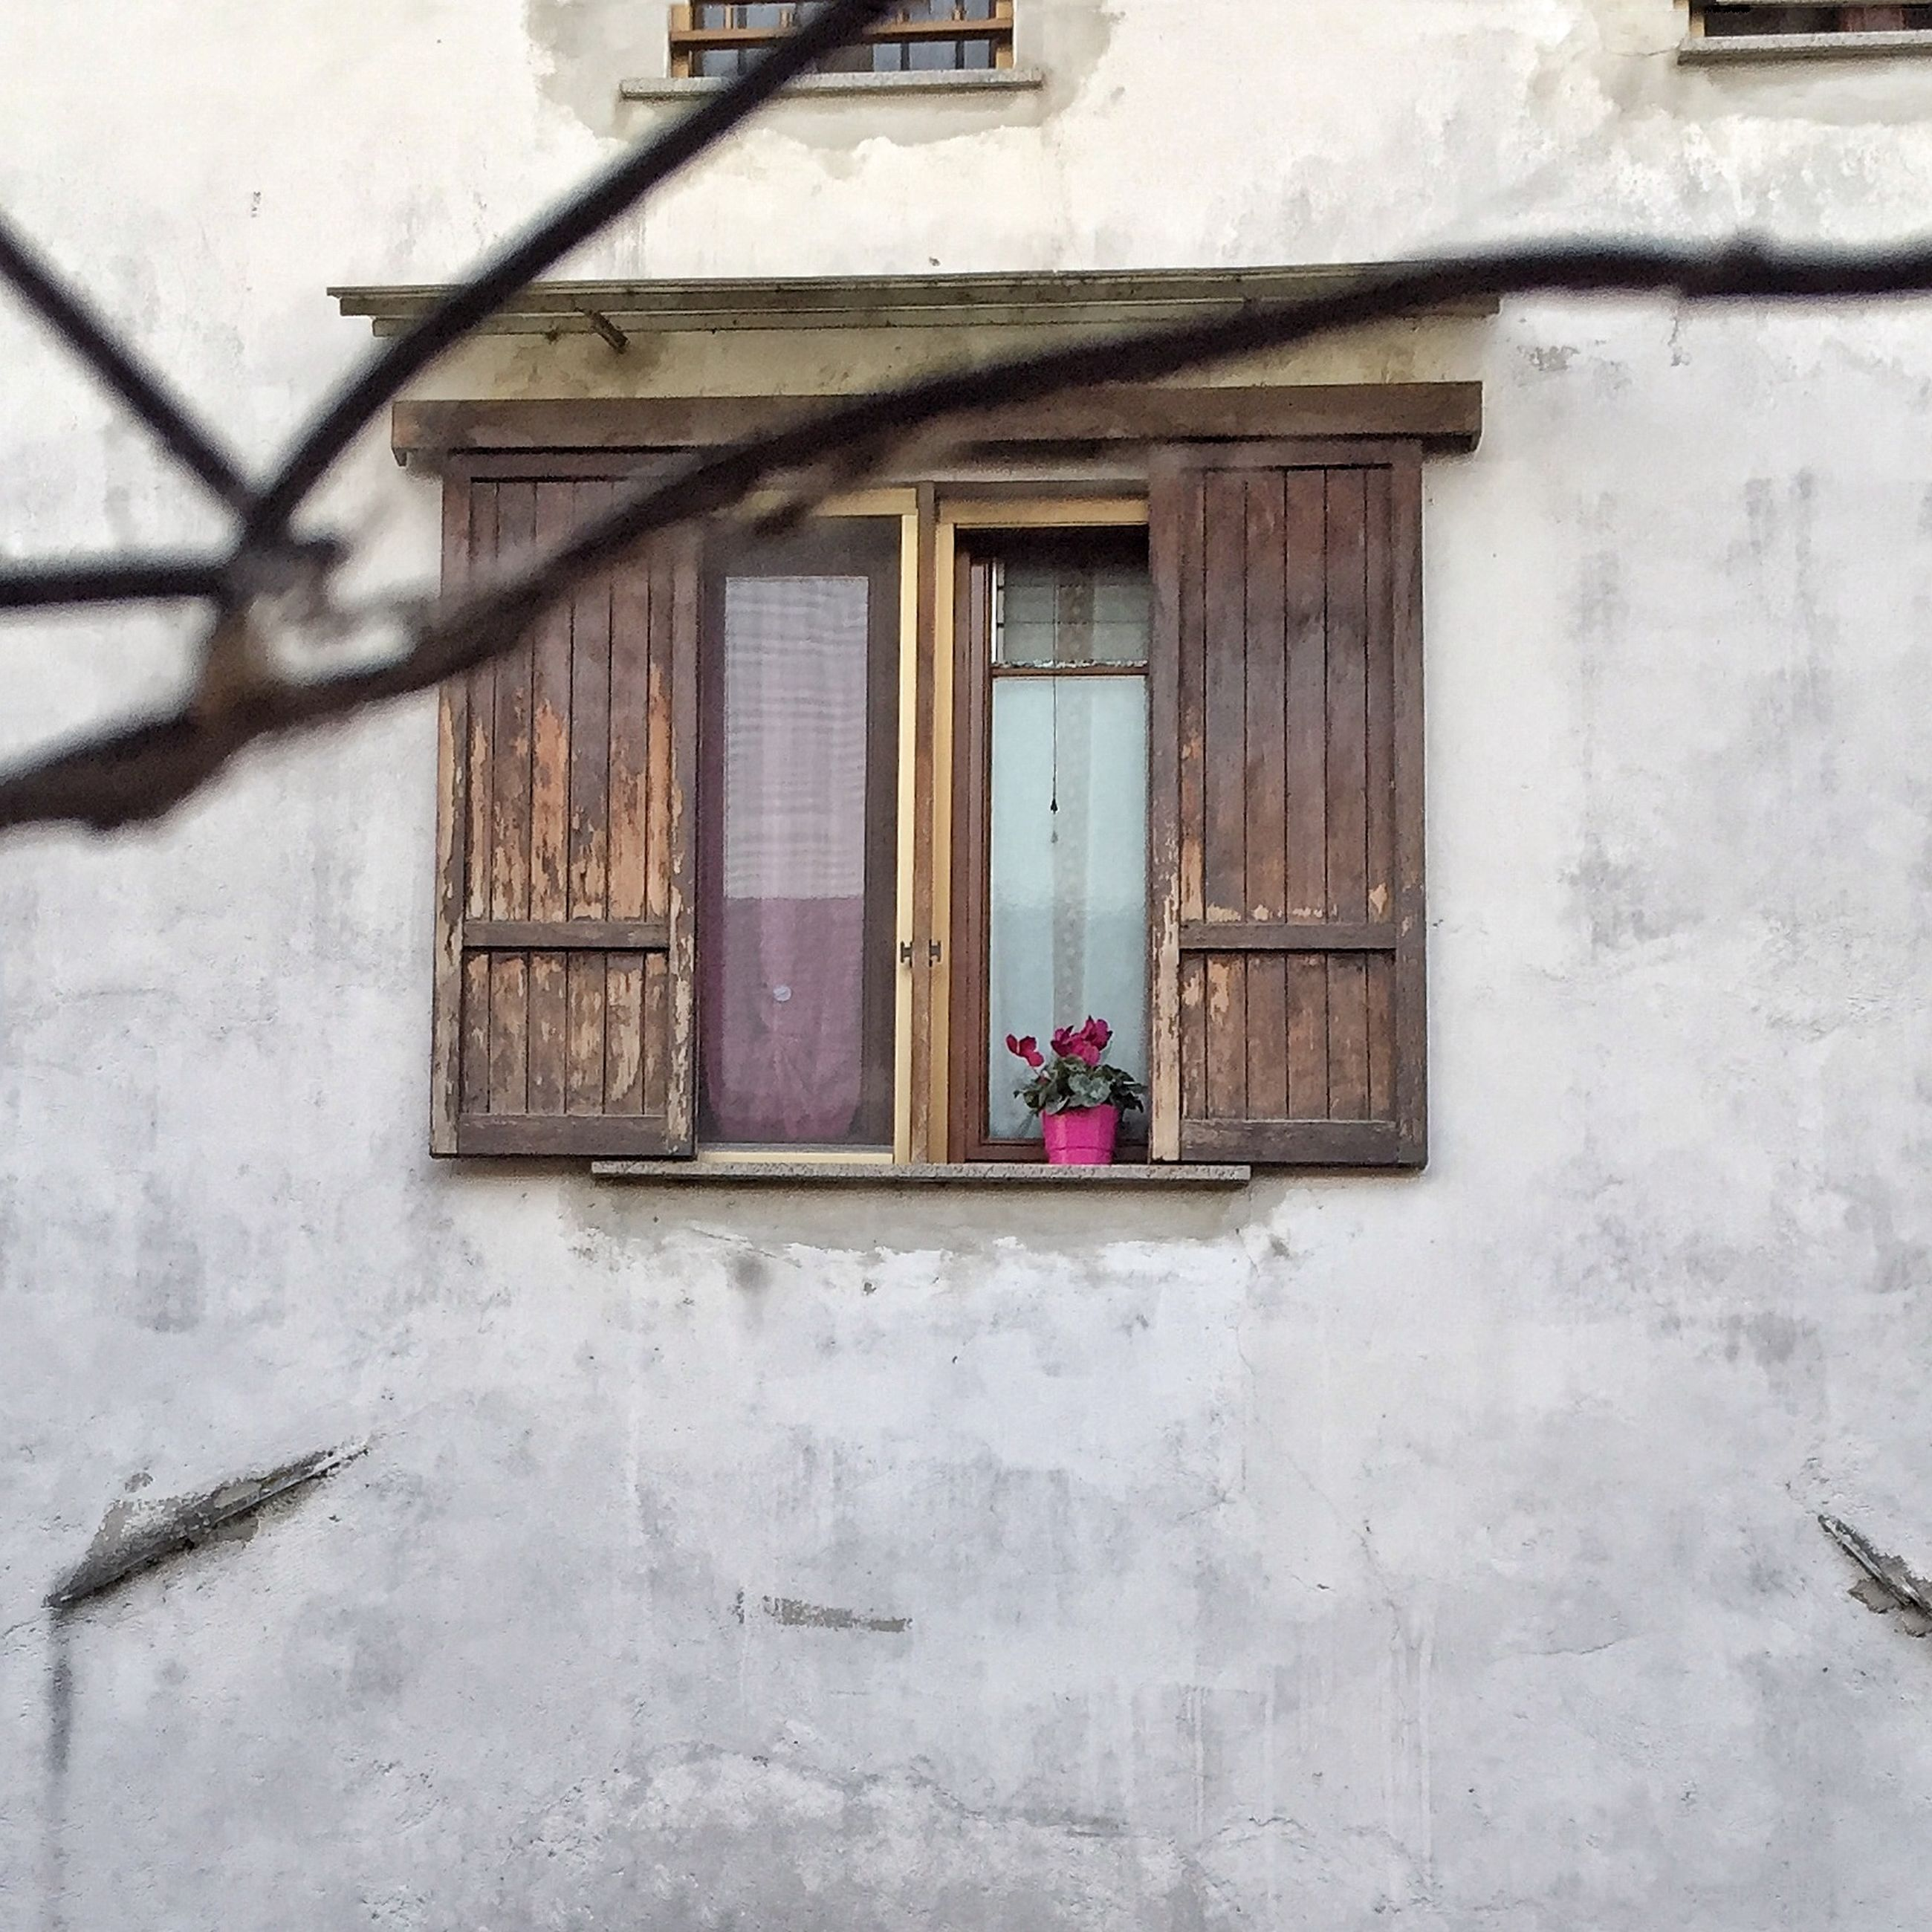 building exterior, architecture, built structure, window, house, door, residential structure, residential building, closed, day, wall - building feature, building, outdoors, wall, no people, abandoned, entrance, old, hanging, sunlight